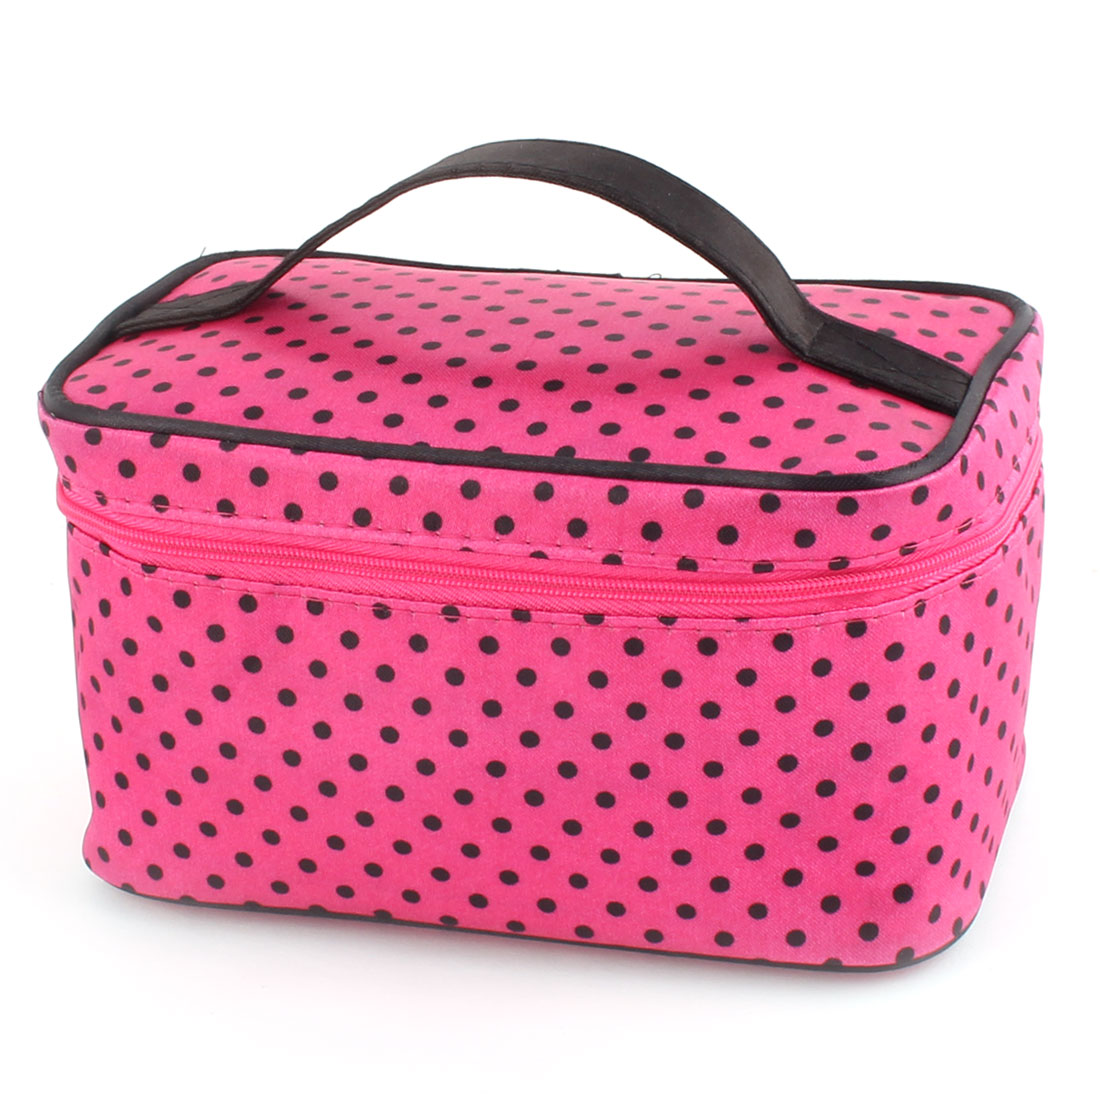 Ladies Outdoor Spotty Print Zippered Cosmetic Makeup Portable Bag Fuchsia Black